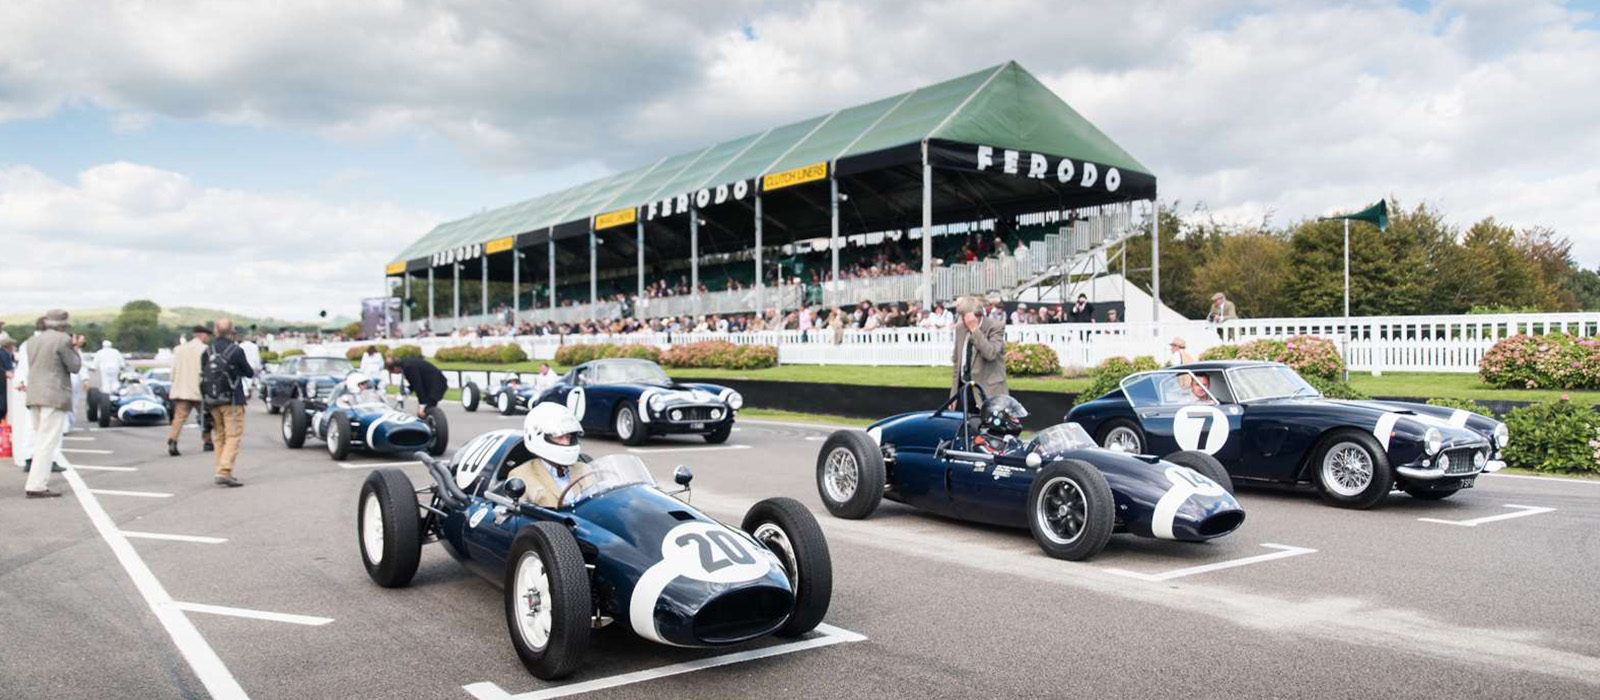 Goodwood-revival-prestige-vehicle-insurance-classic-car-saxon-insurance-brokers.jpg